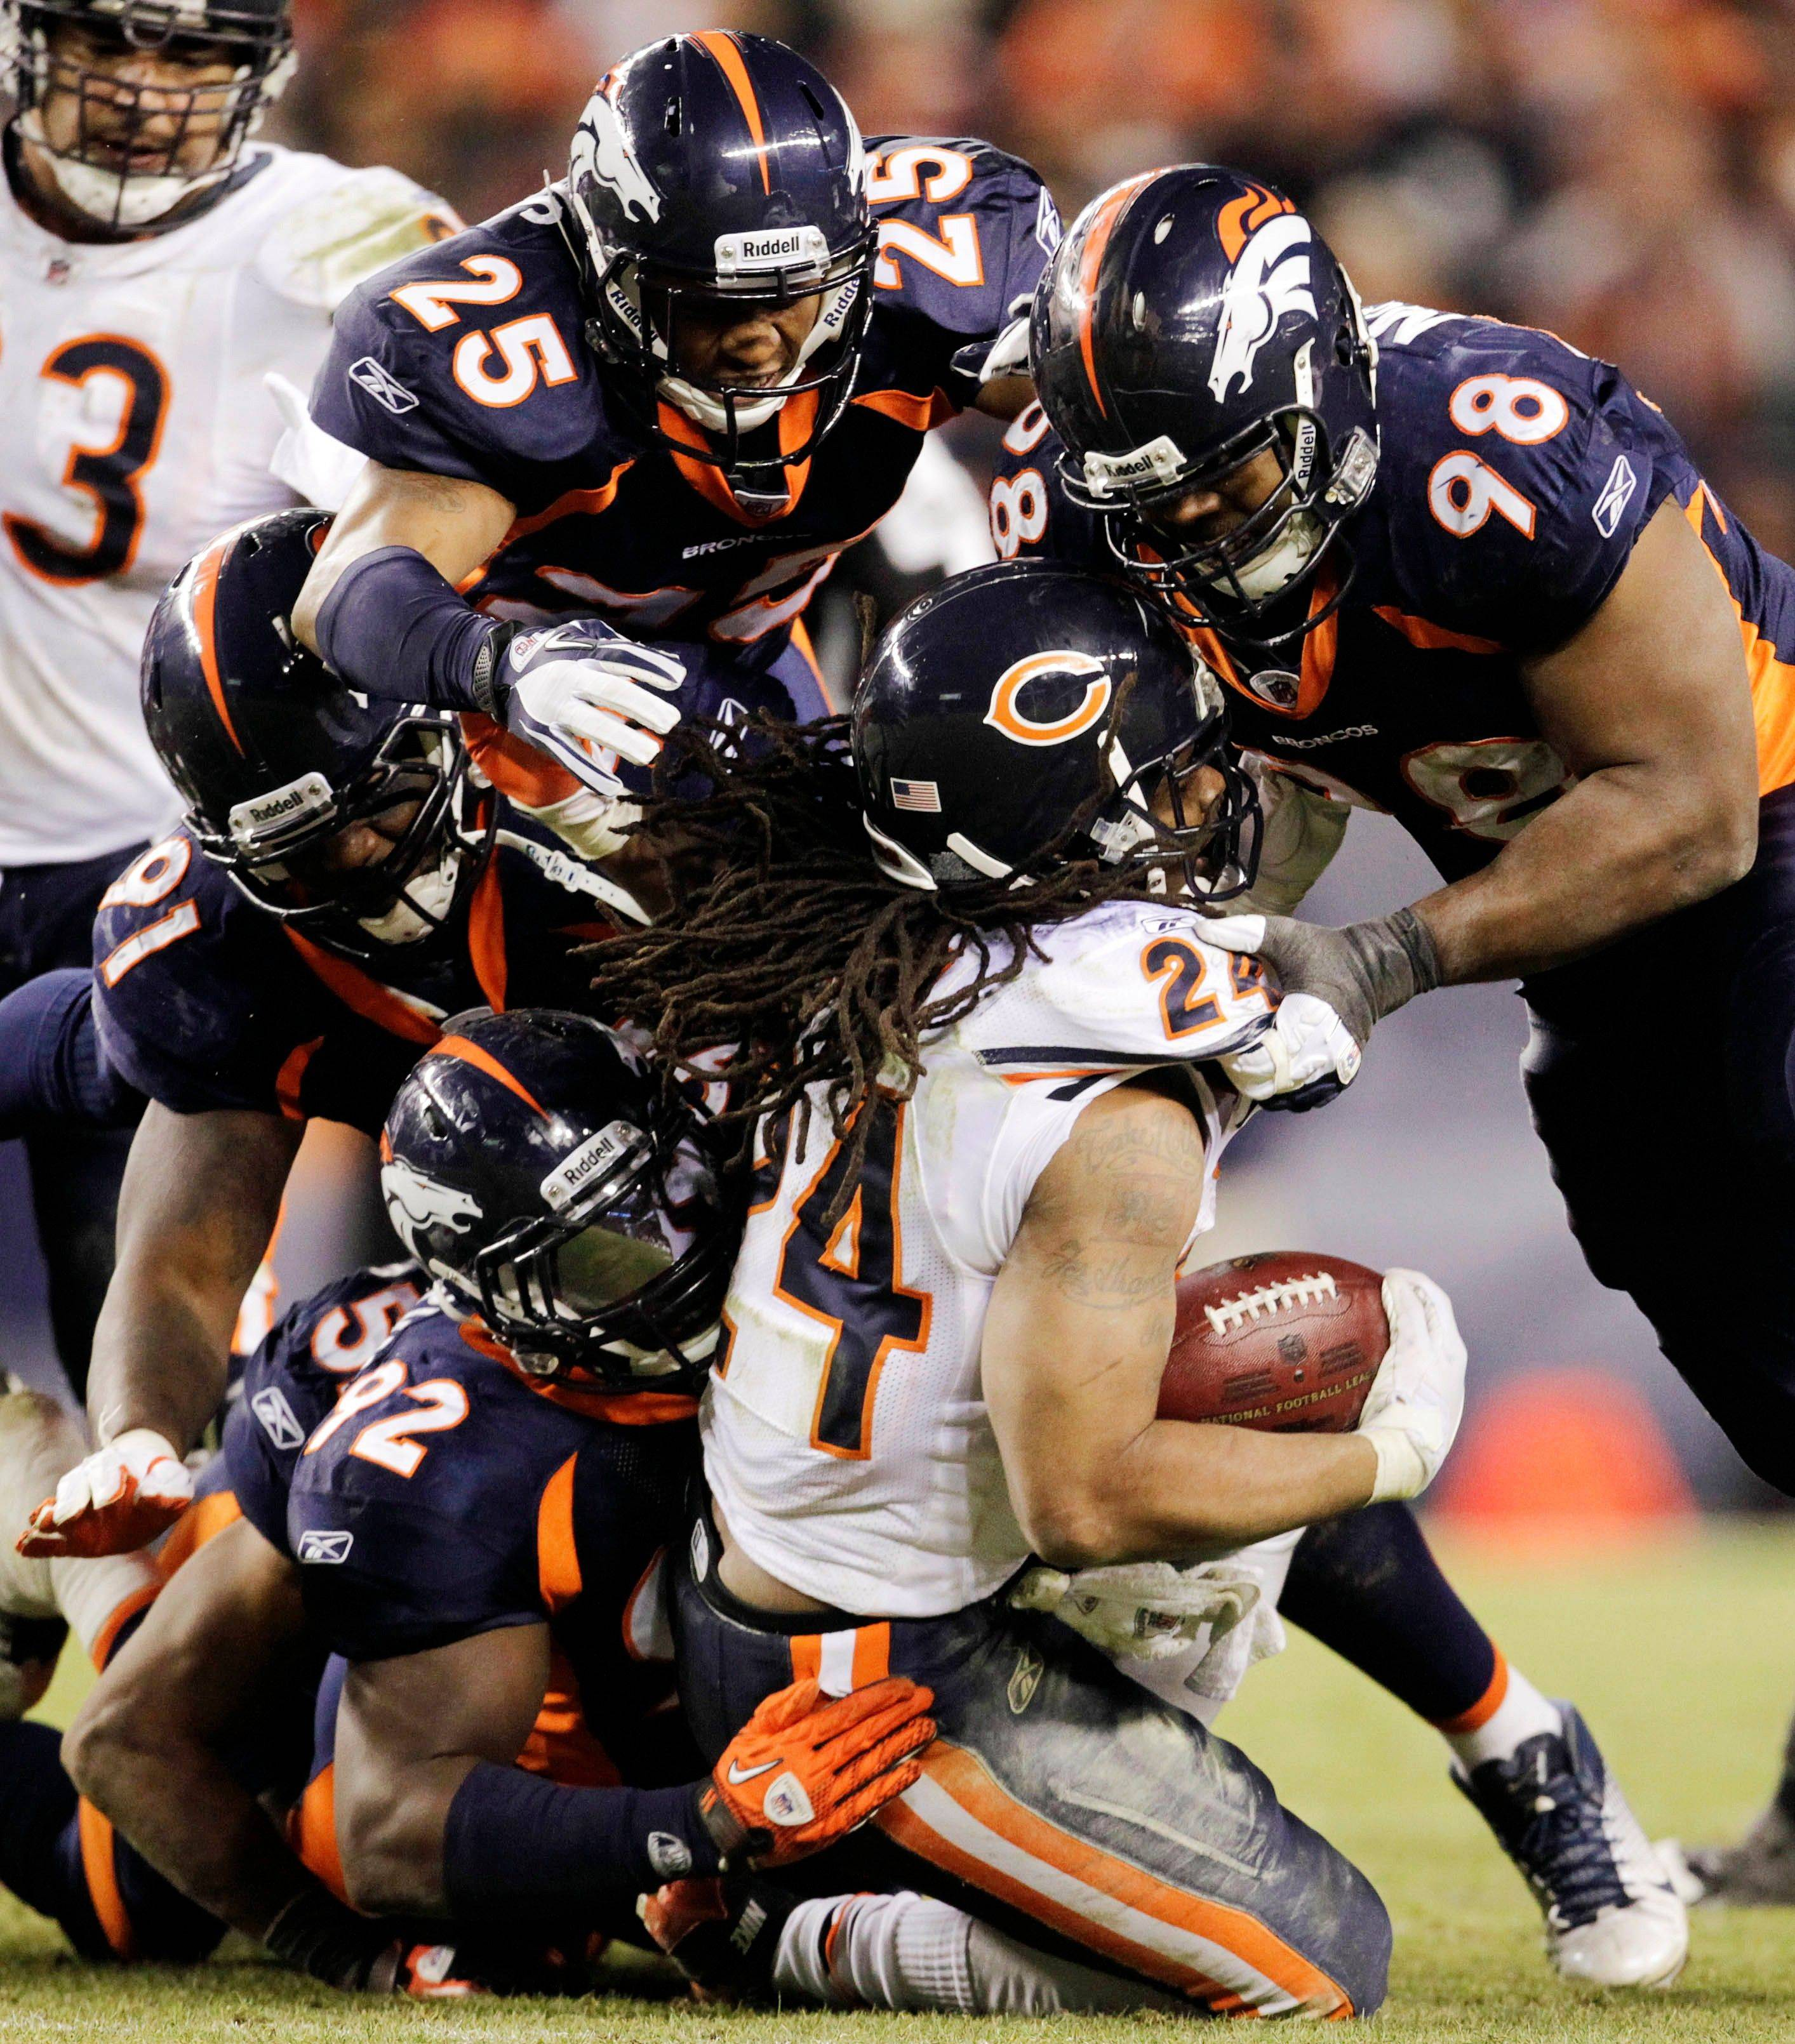 Chicago Bears running back Marion Barber (24) is tackled by the Denver Broncos defense late in the fourth quarter of an NFL football game, Sunday, in Denver. Denver won 13-10 in overtime.